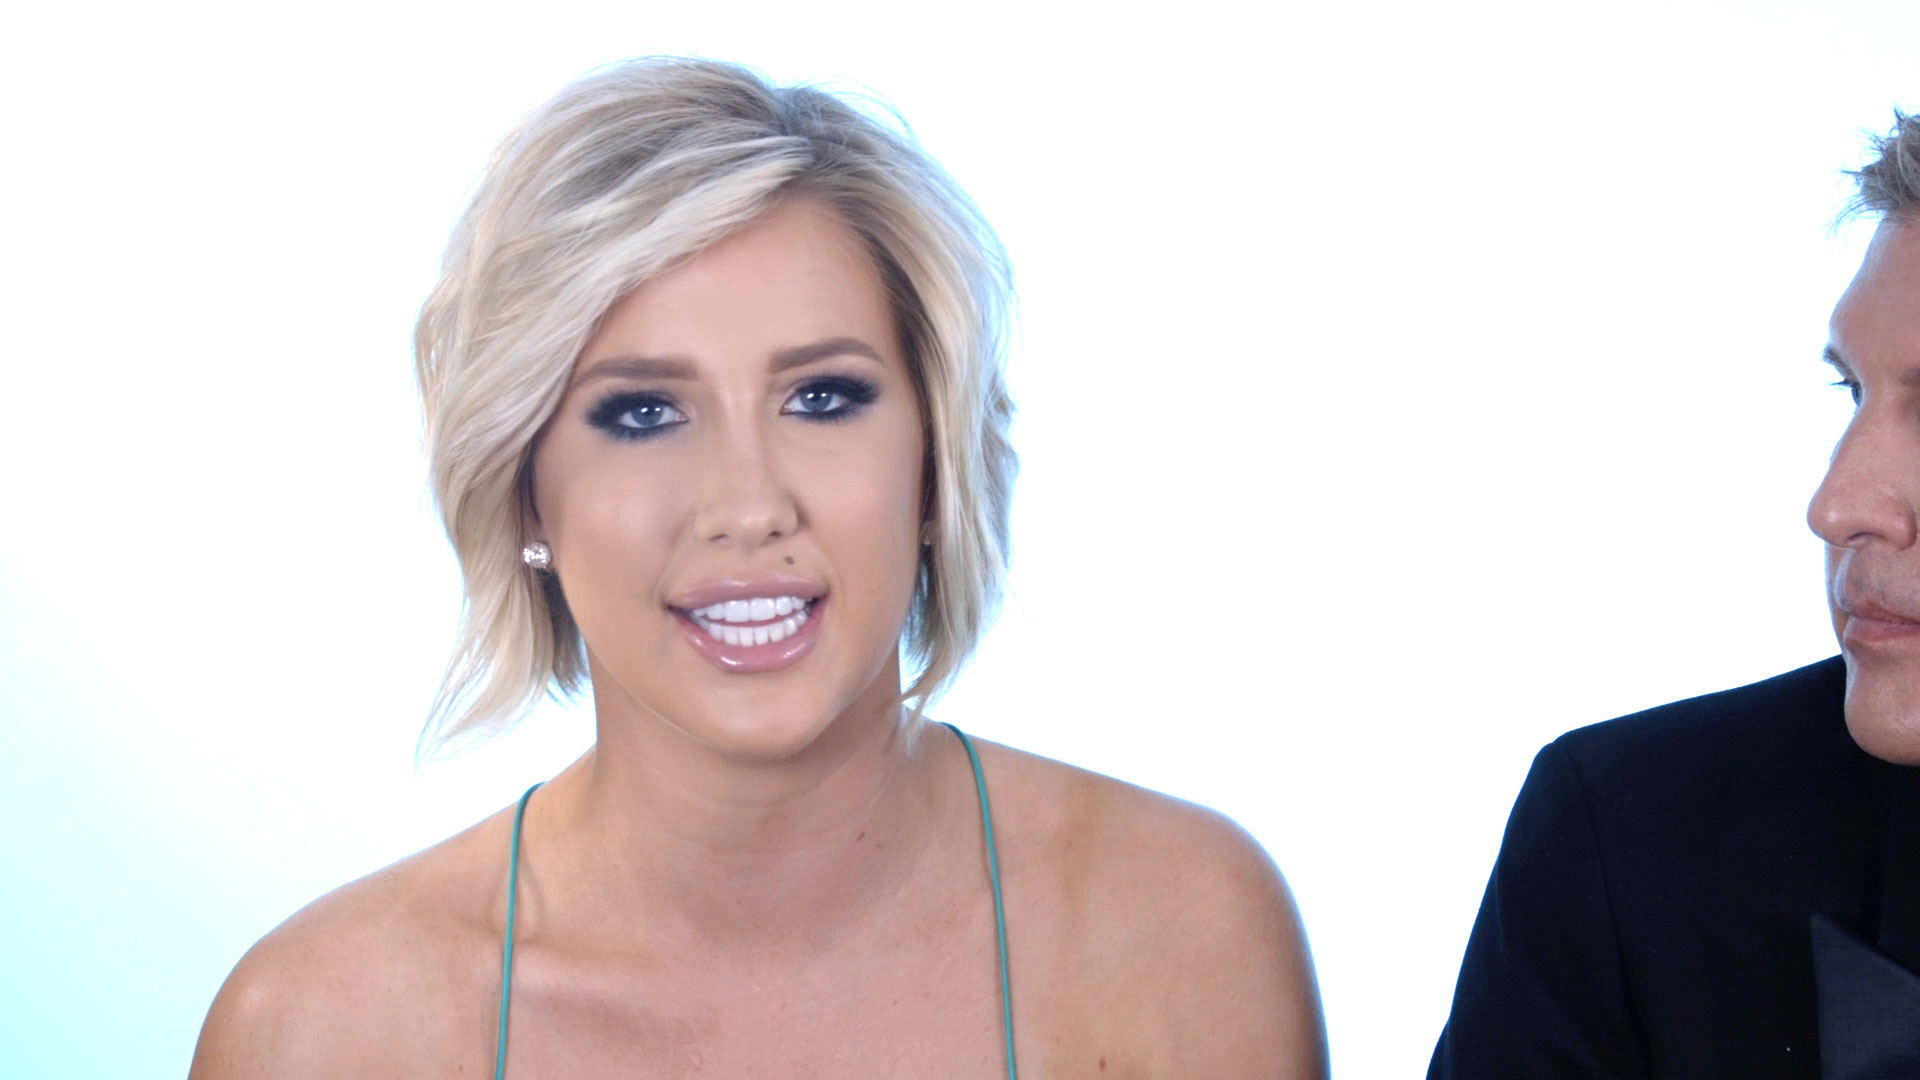 Savannah chrisley nose job